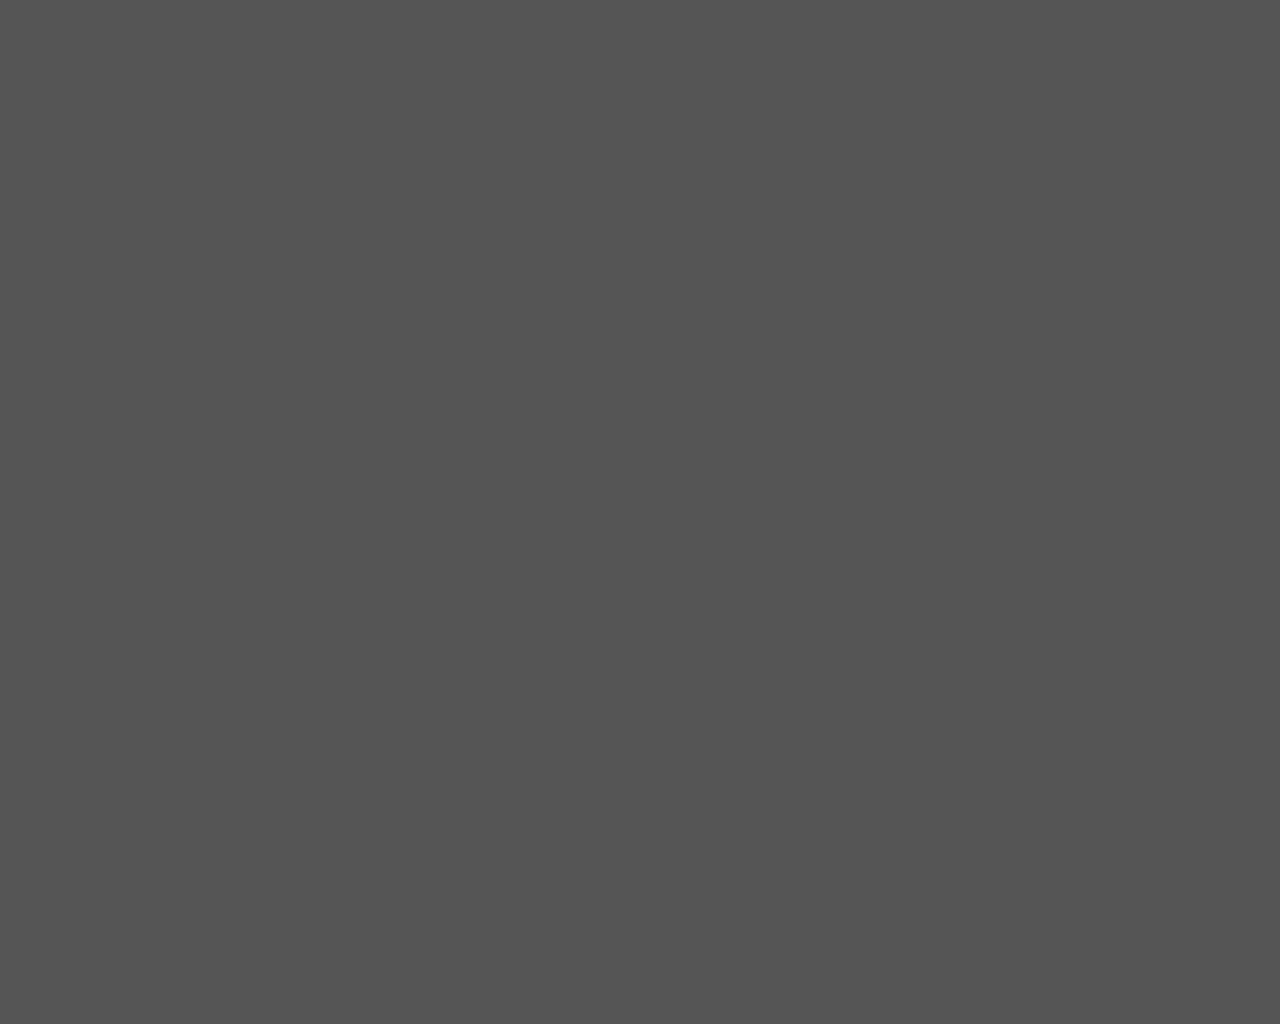 1280x1024 Davys Grey Solid Color Background